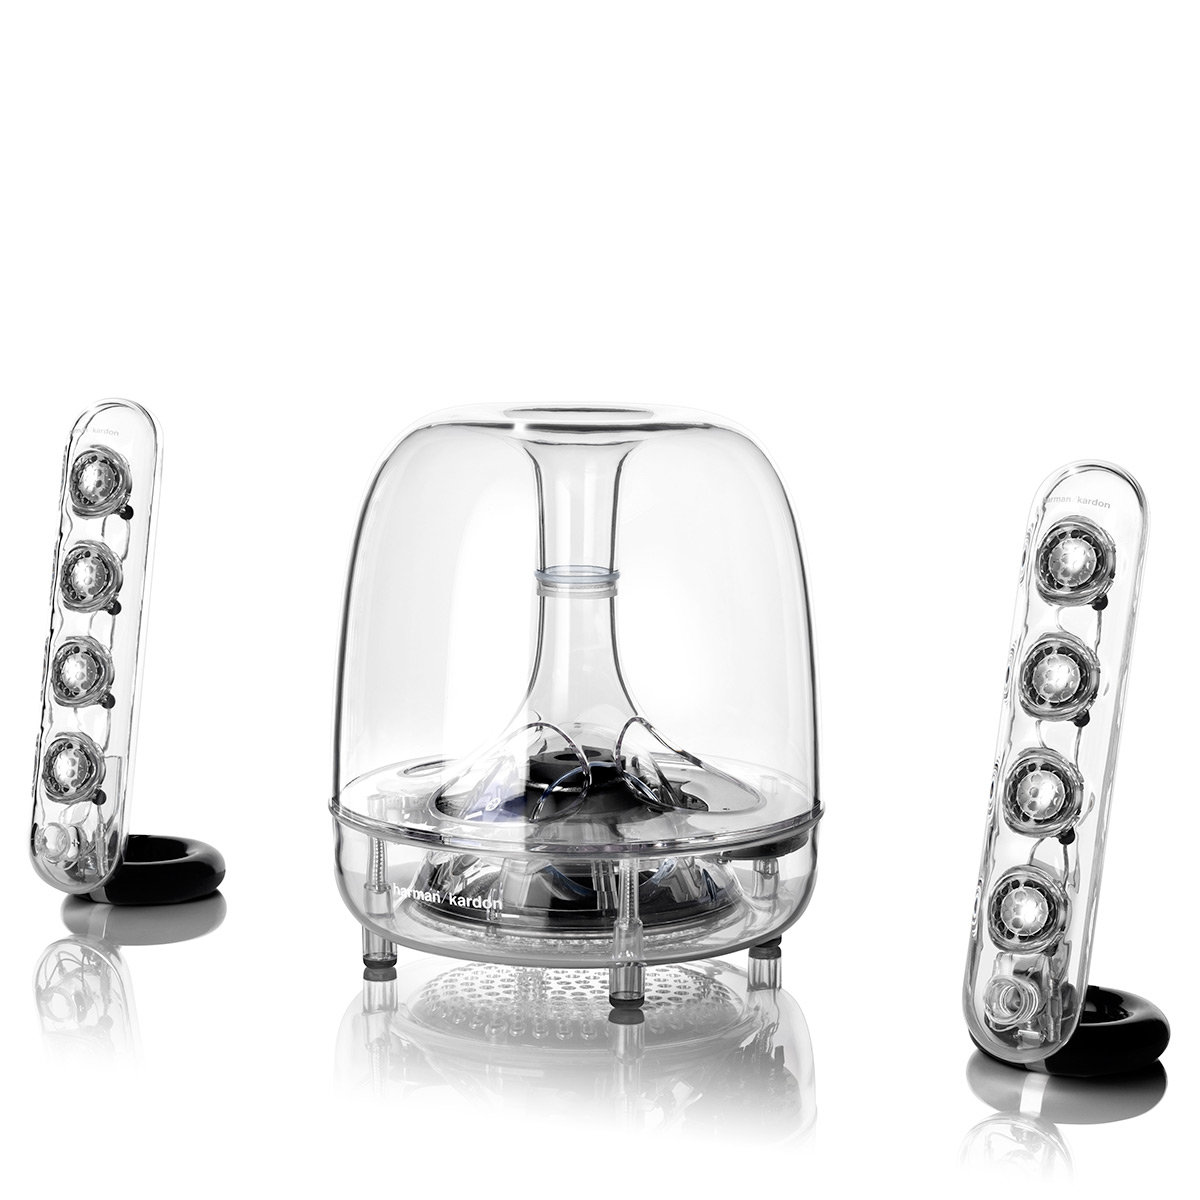 Zvocnik SOUNDSTICKS III BT HARMAN KARDON